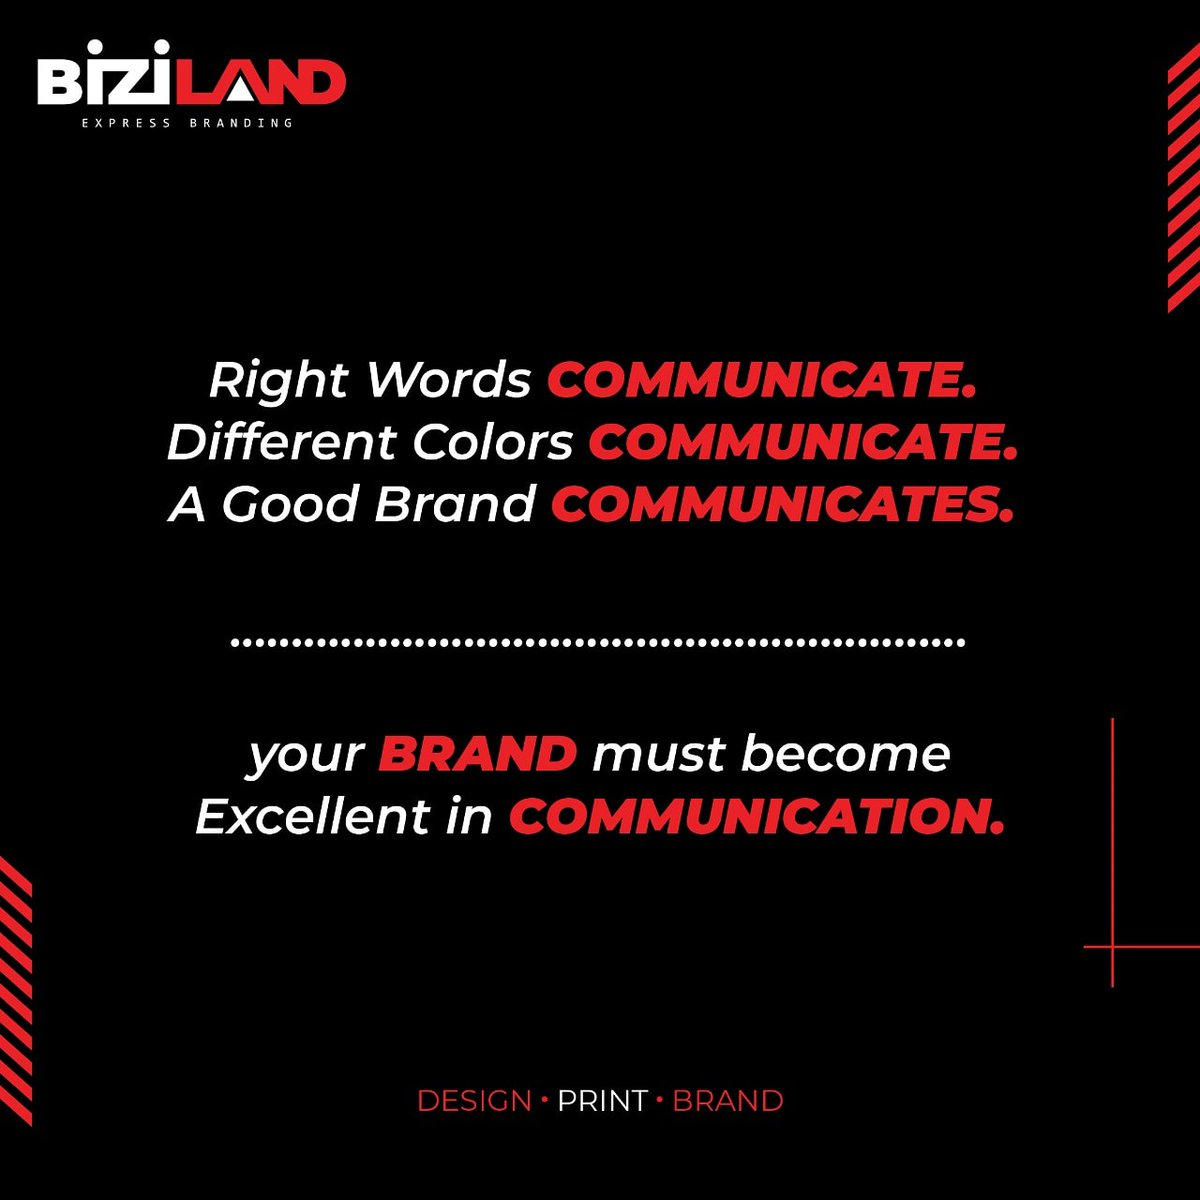 Communication is key while building a Strong Brand. Learn to communicate correctly.  #businesstips #branding #success #bizilandpic.twitter.com/qPEPz4ly65